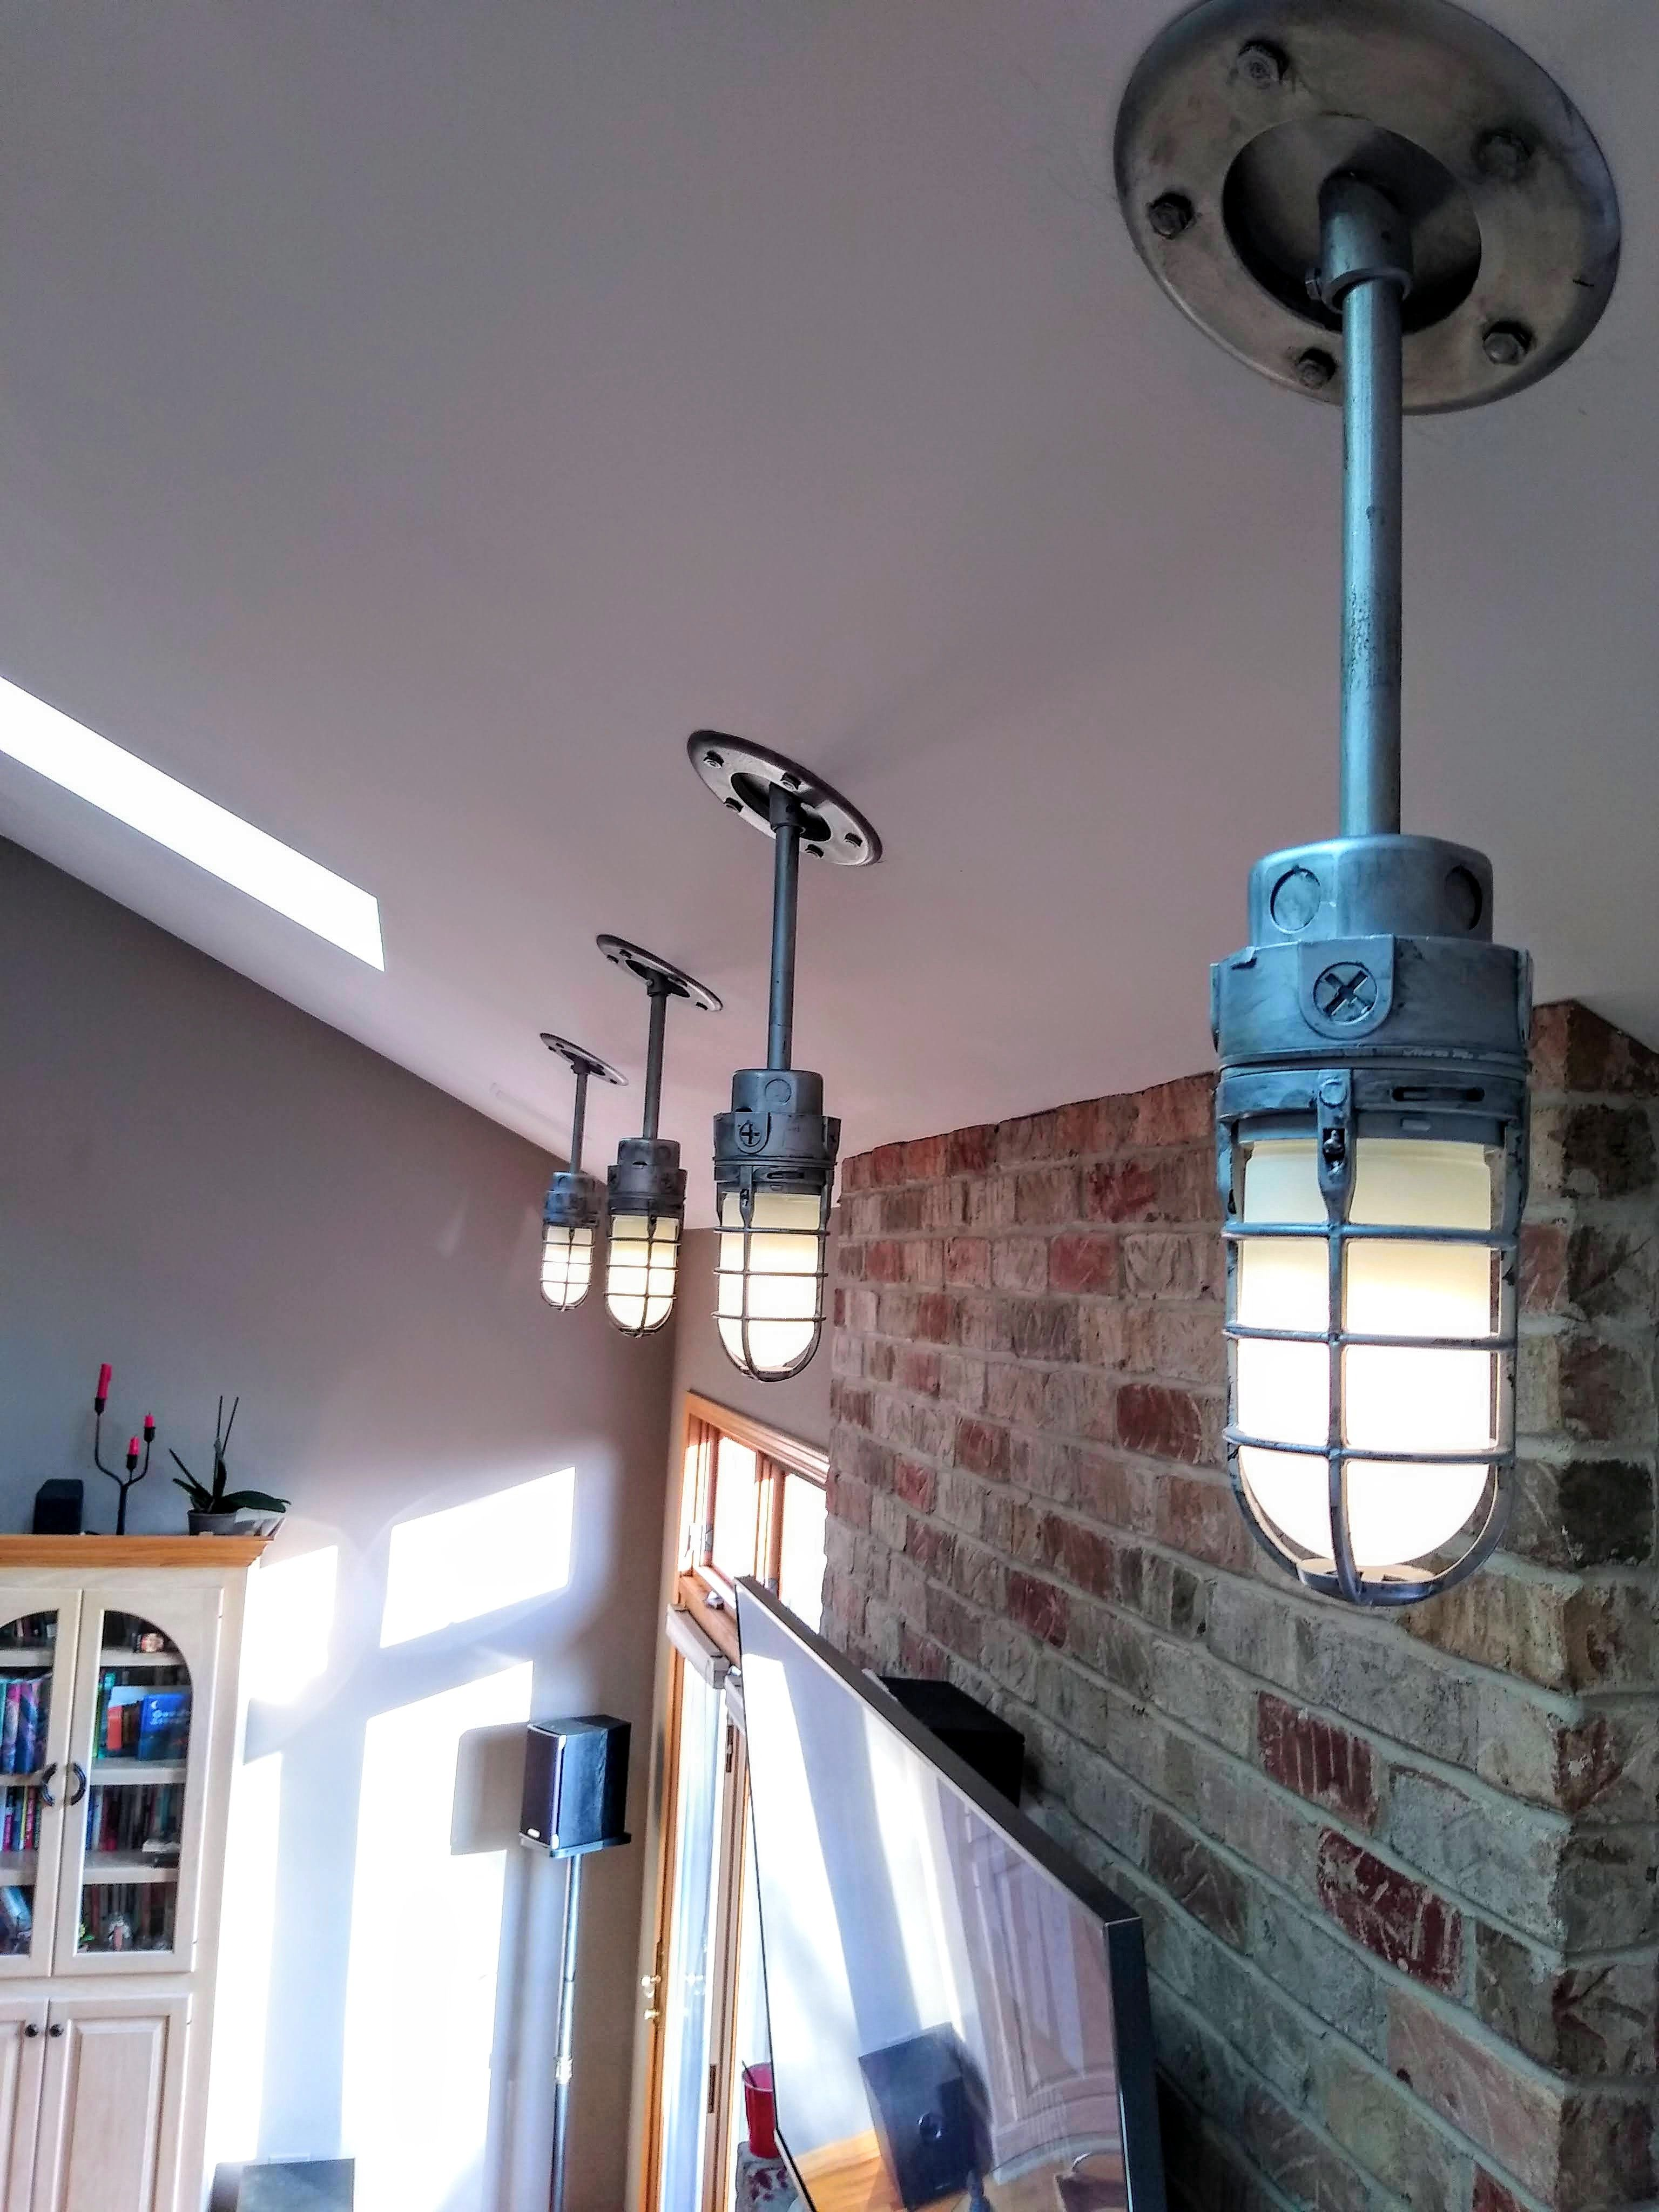 Pin On Diy Industrial Pipe Lamp With Electric Outlet